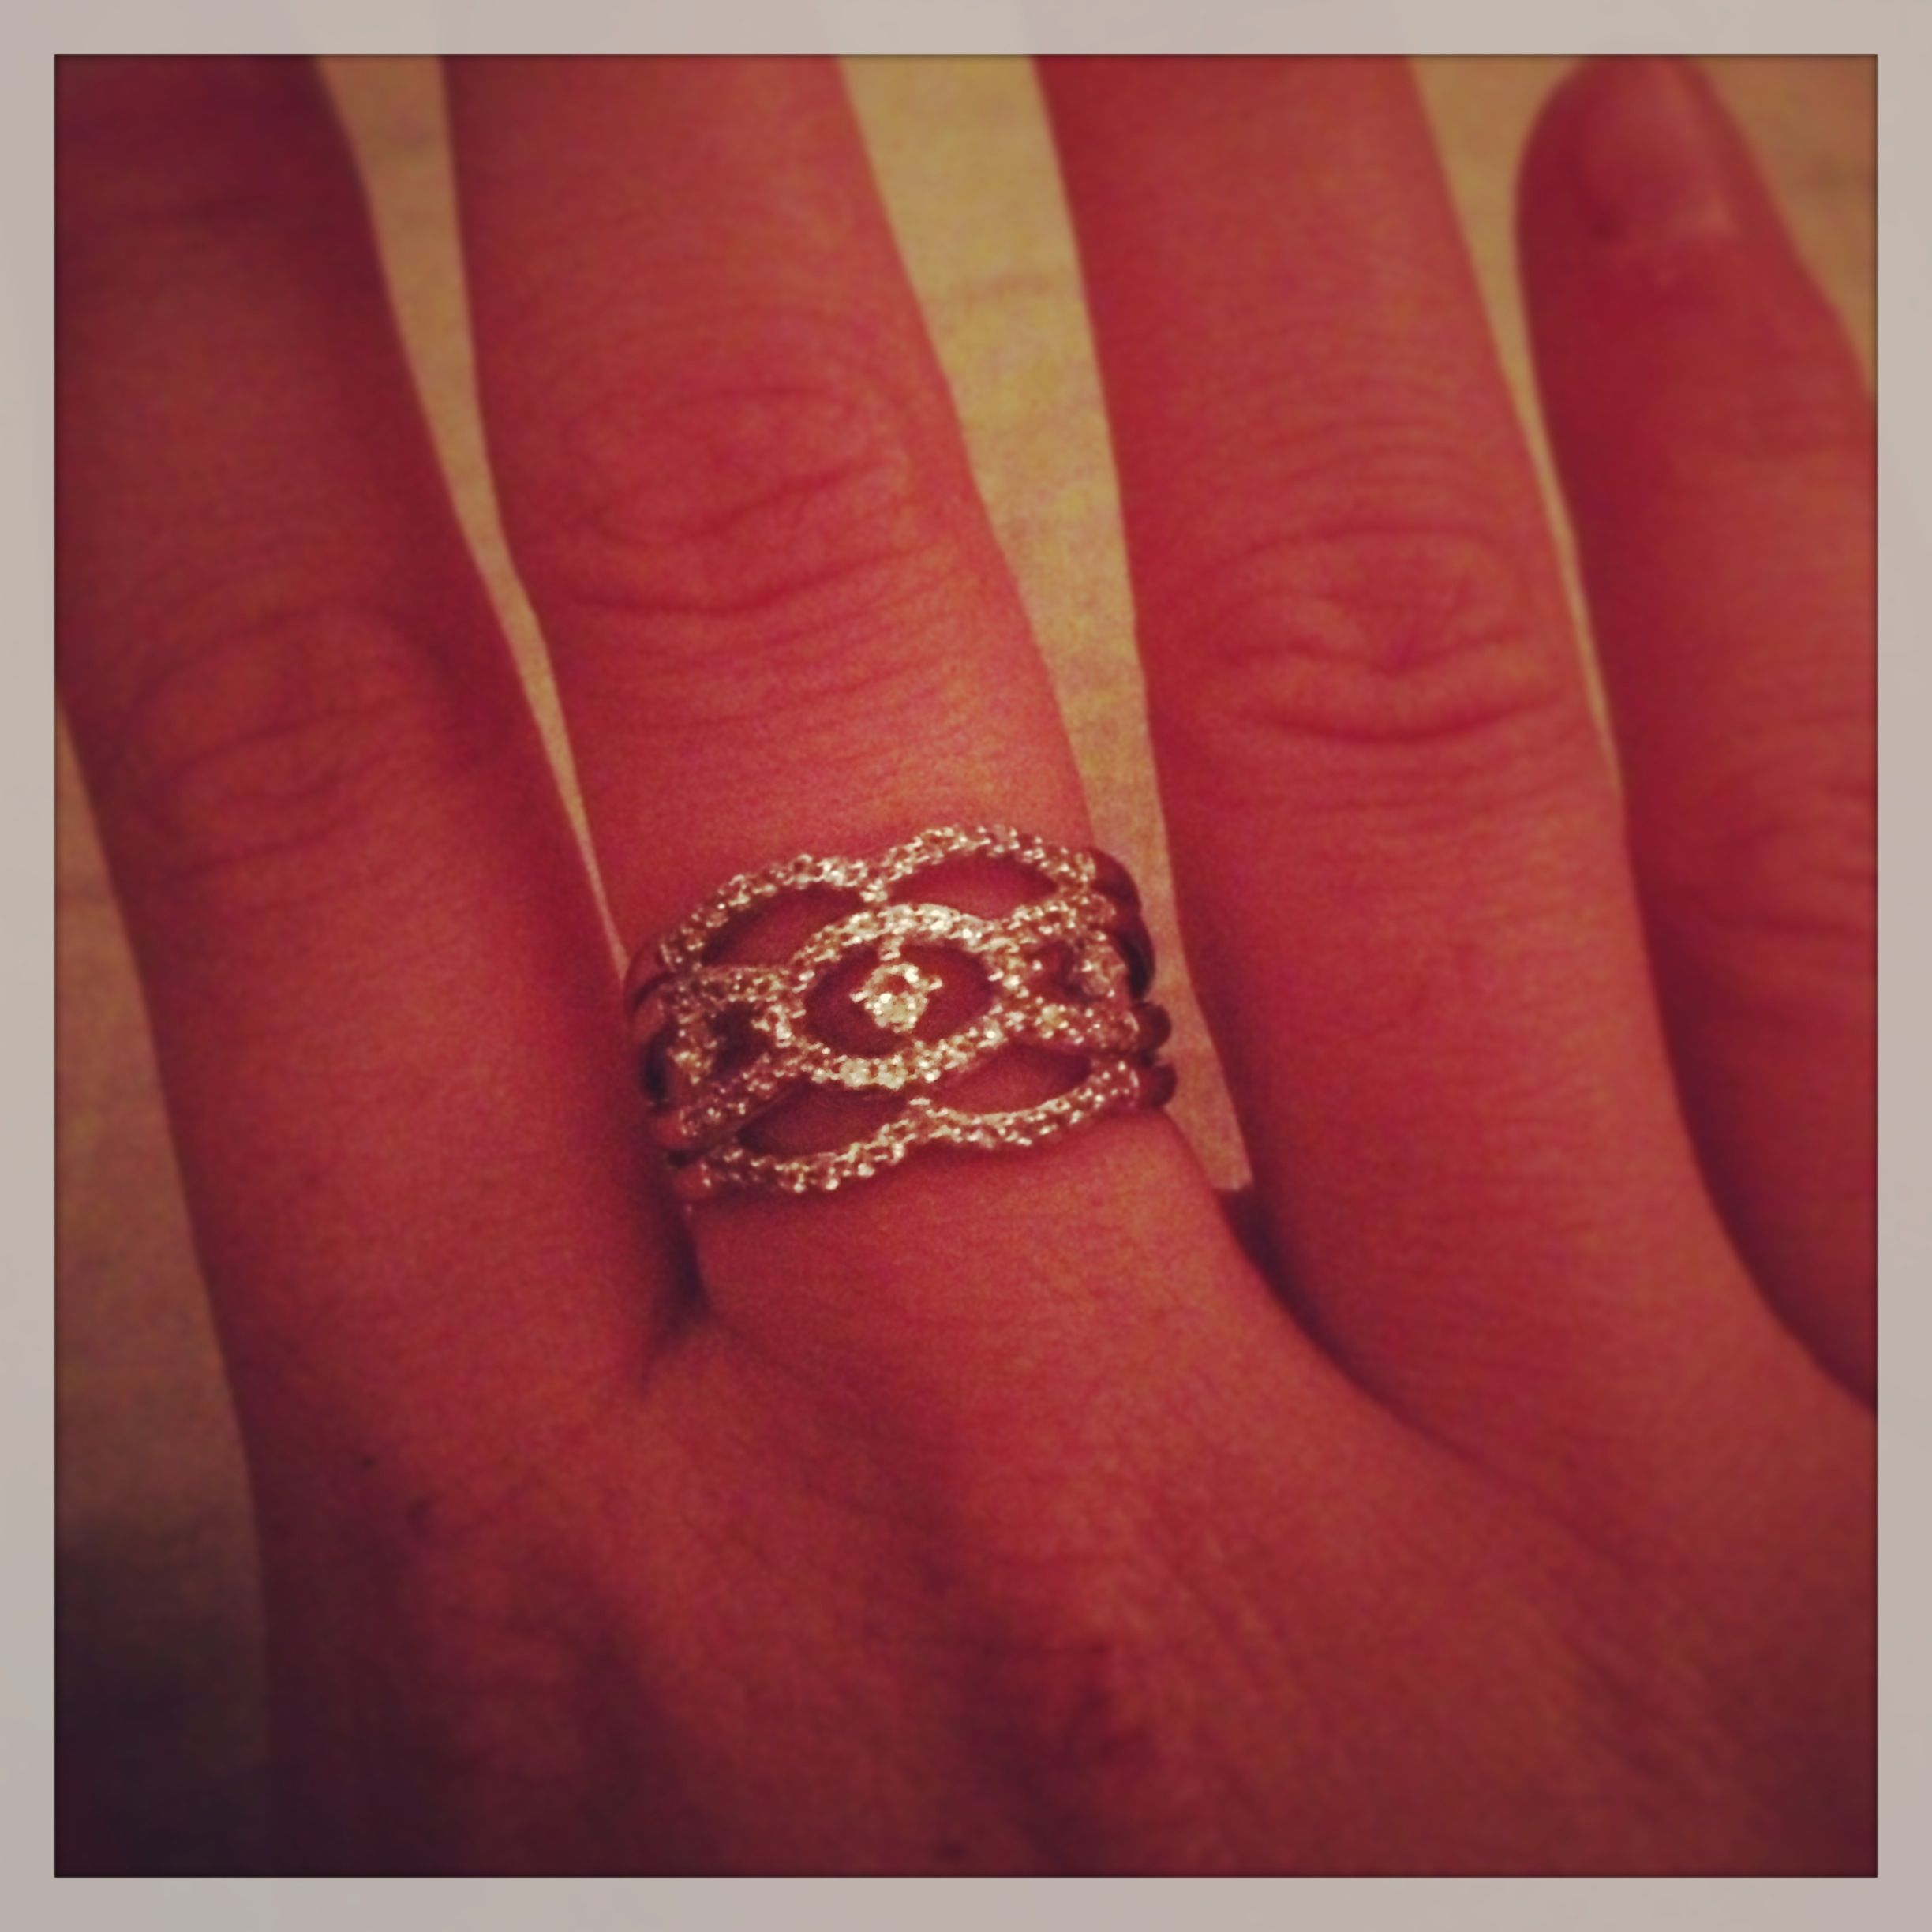 Right hand ring present for my birthday. Thank you love